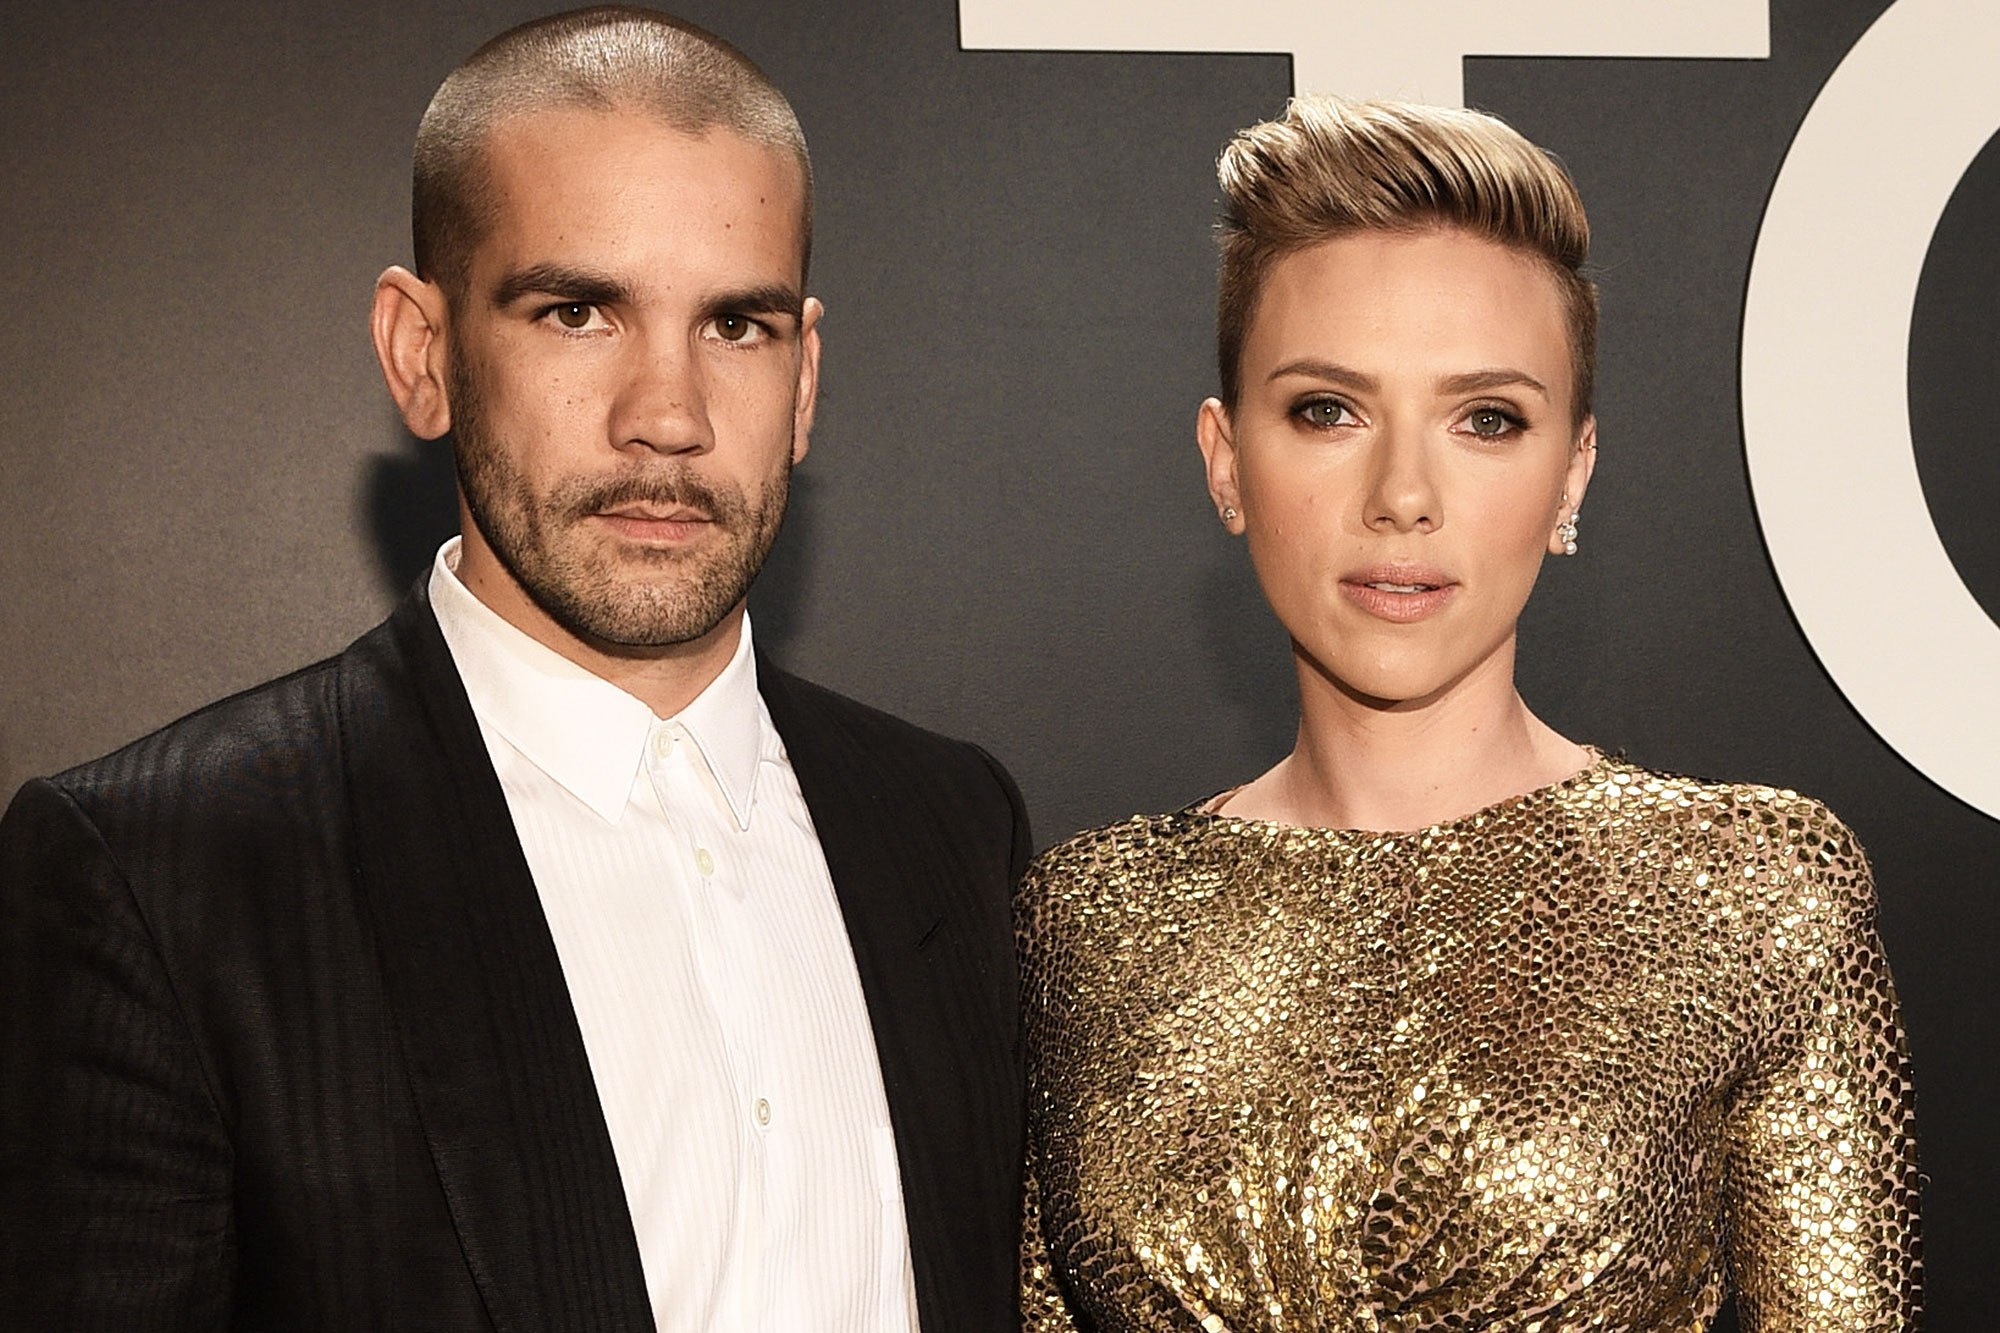 LOS ANGELES, CA - FEBRUARY 20:  Journalist Romain Dauriac (L) and actress Scarlett Johansson, both wearing TOM FORD, attend the TOM FORD Autumn/Winter 2015 Womenswear Collection Presentation at Milk Studios in Los Angeles on February 20, 2015.  (Photo by Michael Buckner/Getty Images for Tom Ford)